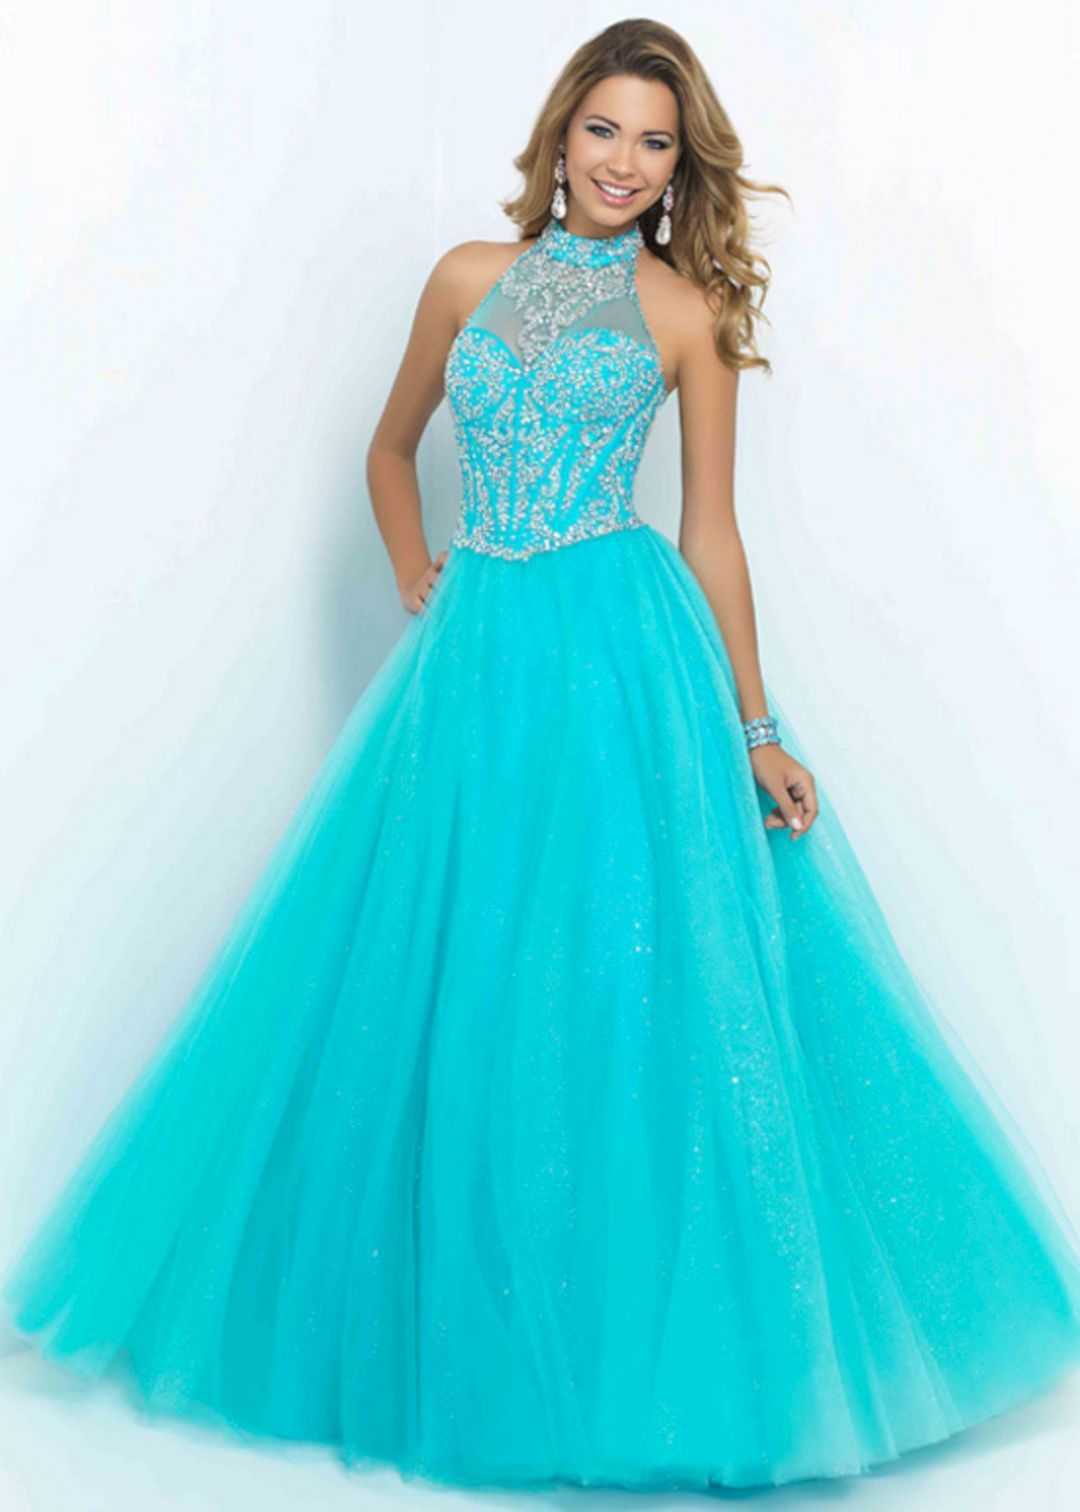 Incredible wedding gown ideas blue prom dresses most beautiful